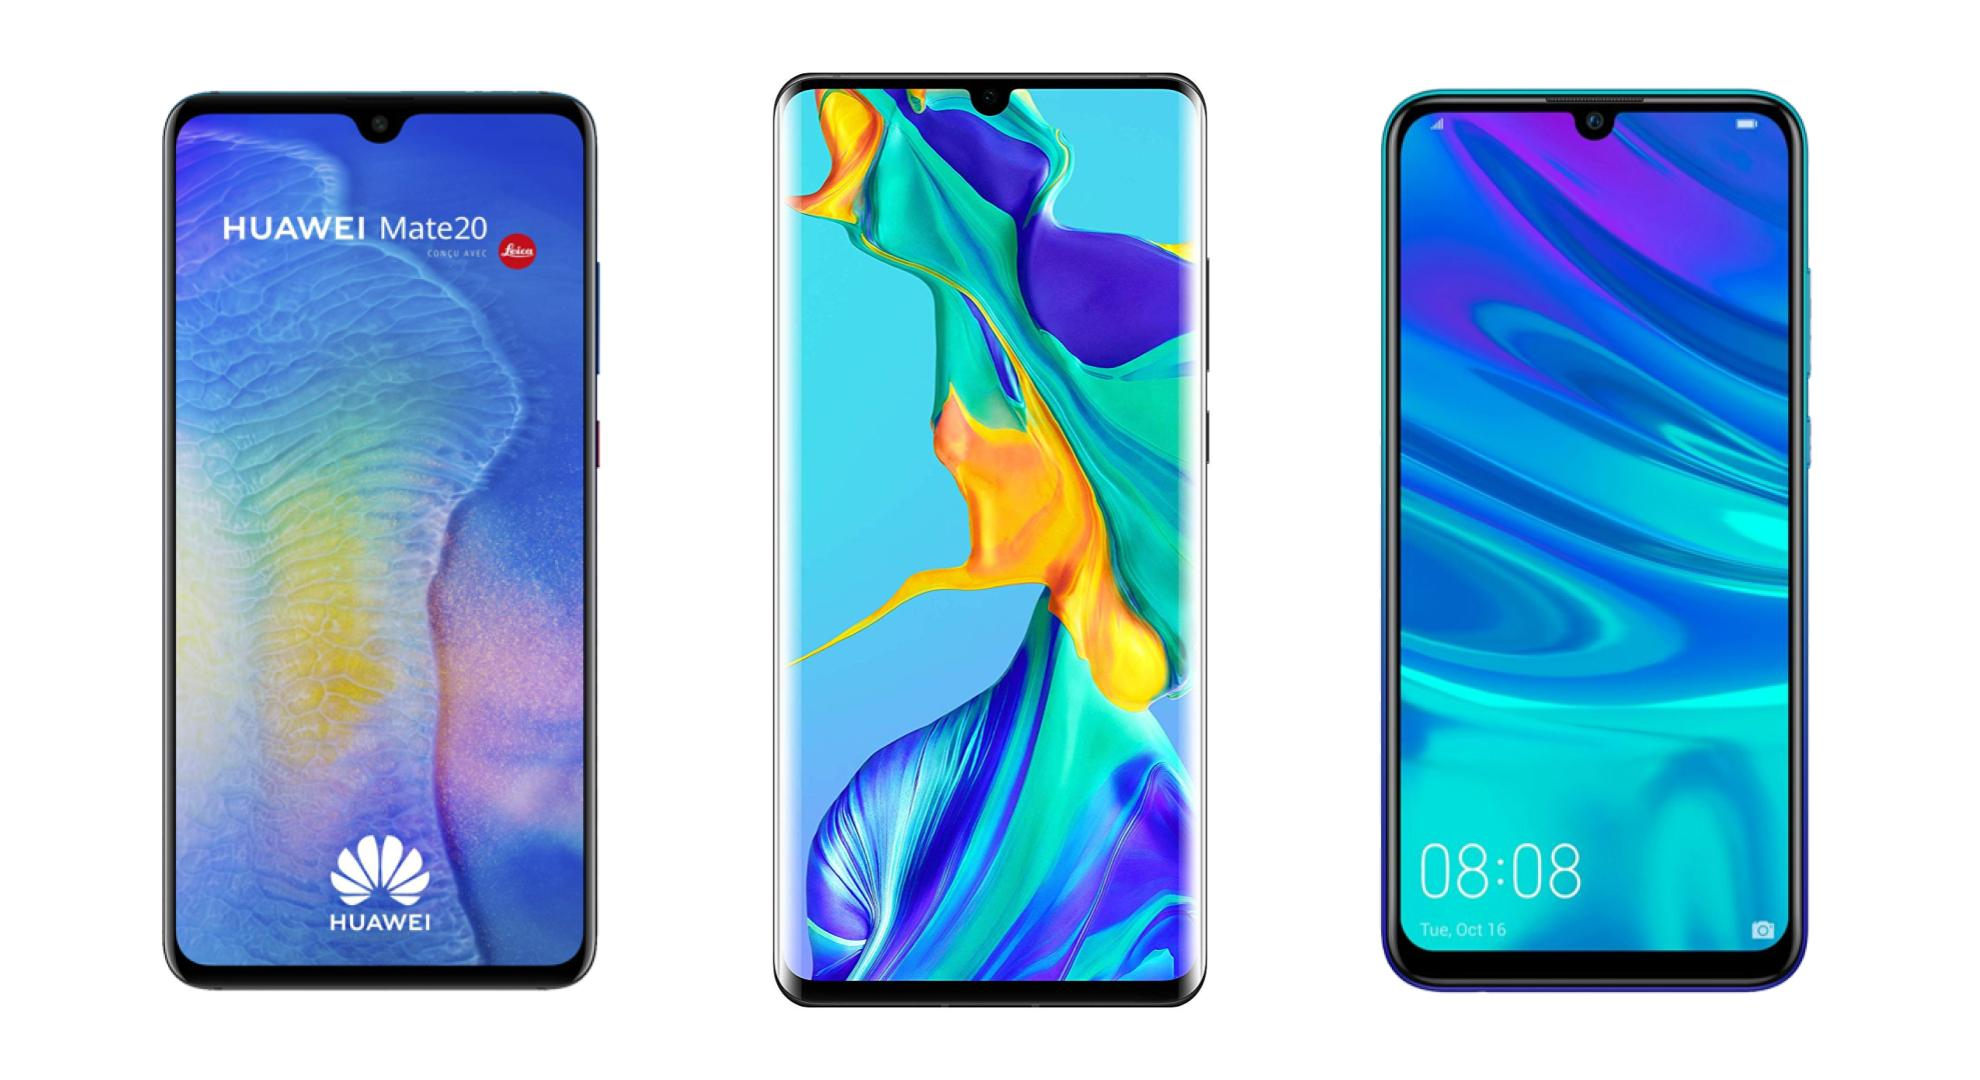 smartphone huawei : Comment choisir + comparatif complet